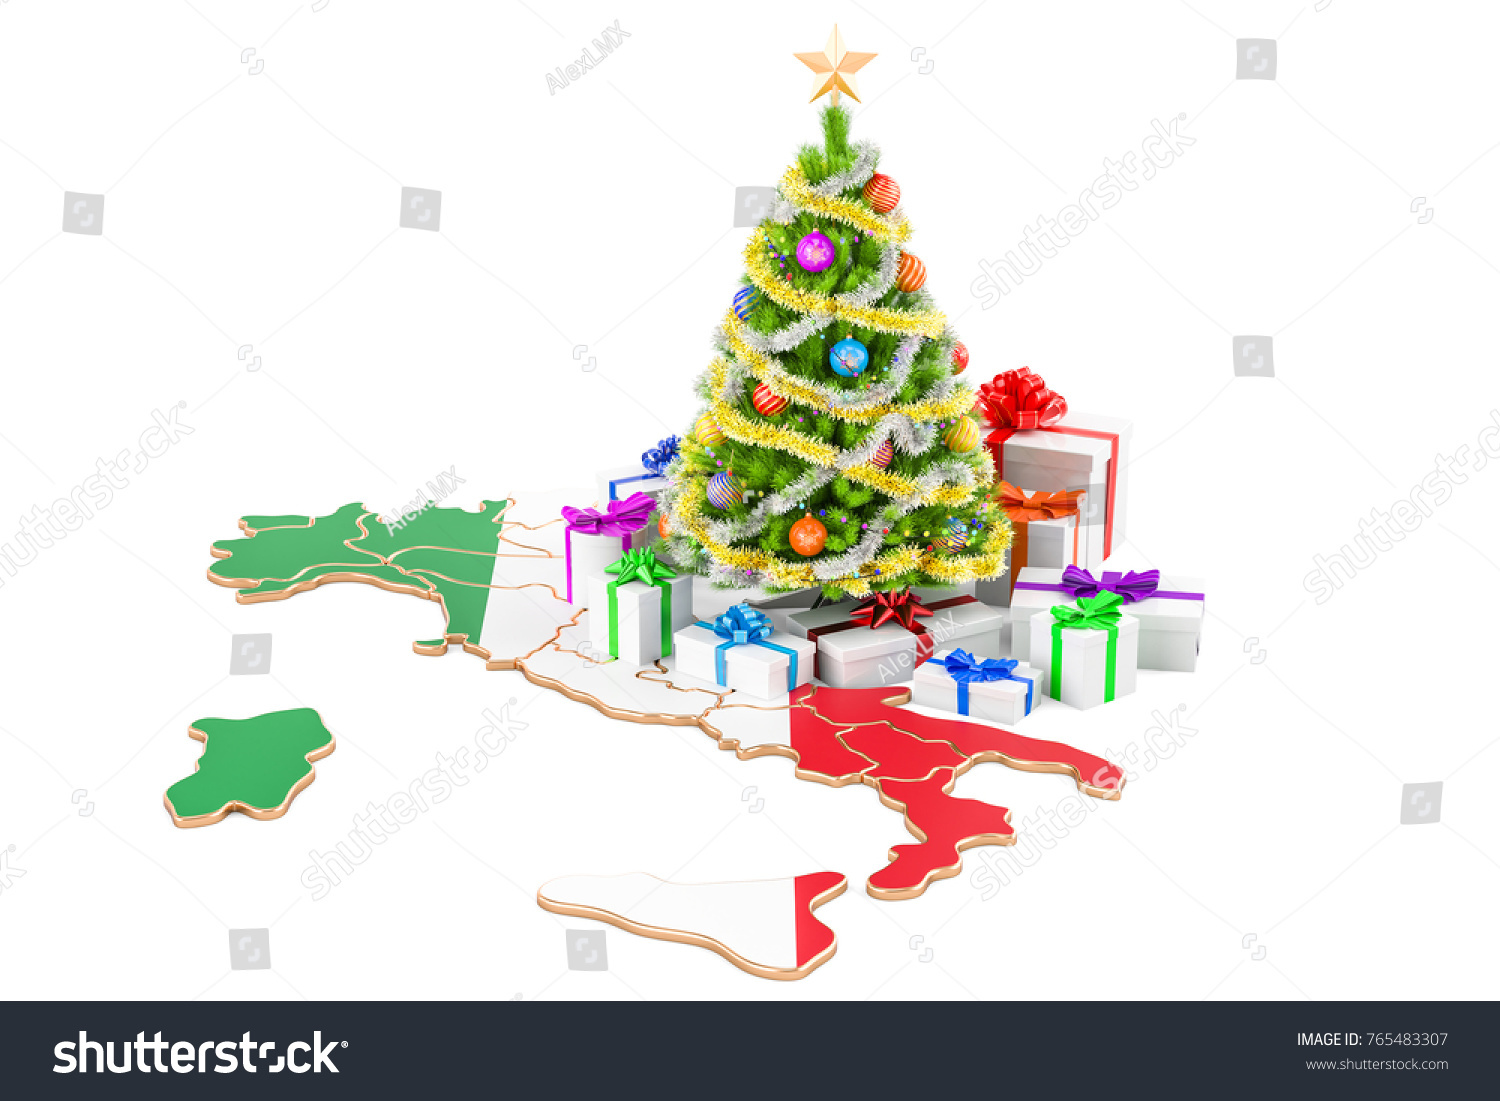 Christmas New Year Holidays Italy Concept Stock Illustration ...